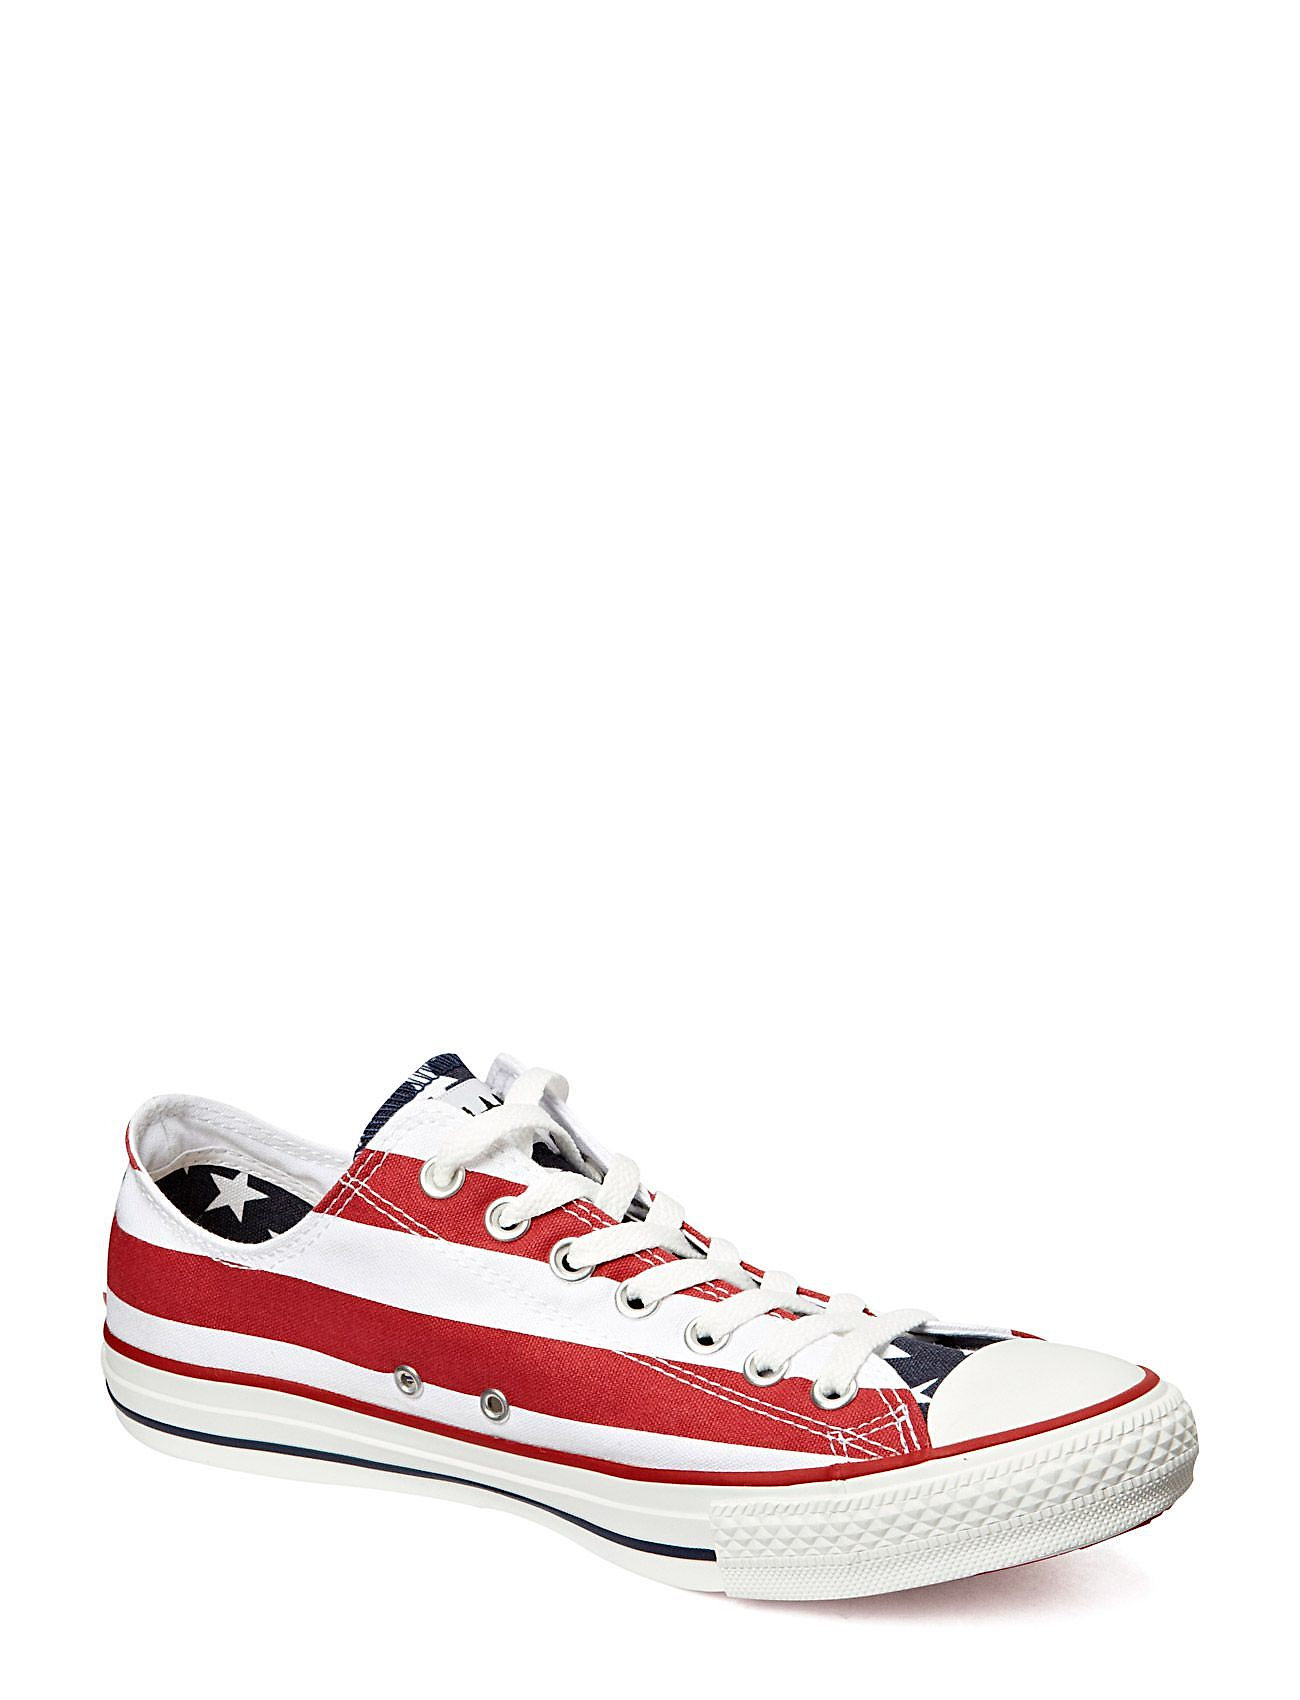 Converse ALL STAR STARS & BARS OX - STARS & BARS